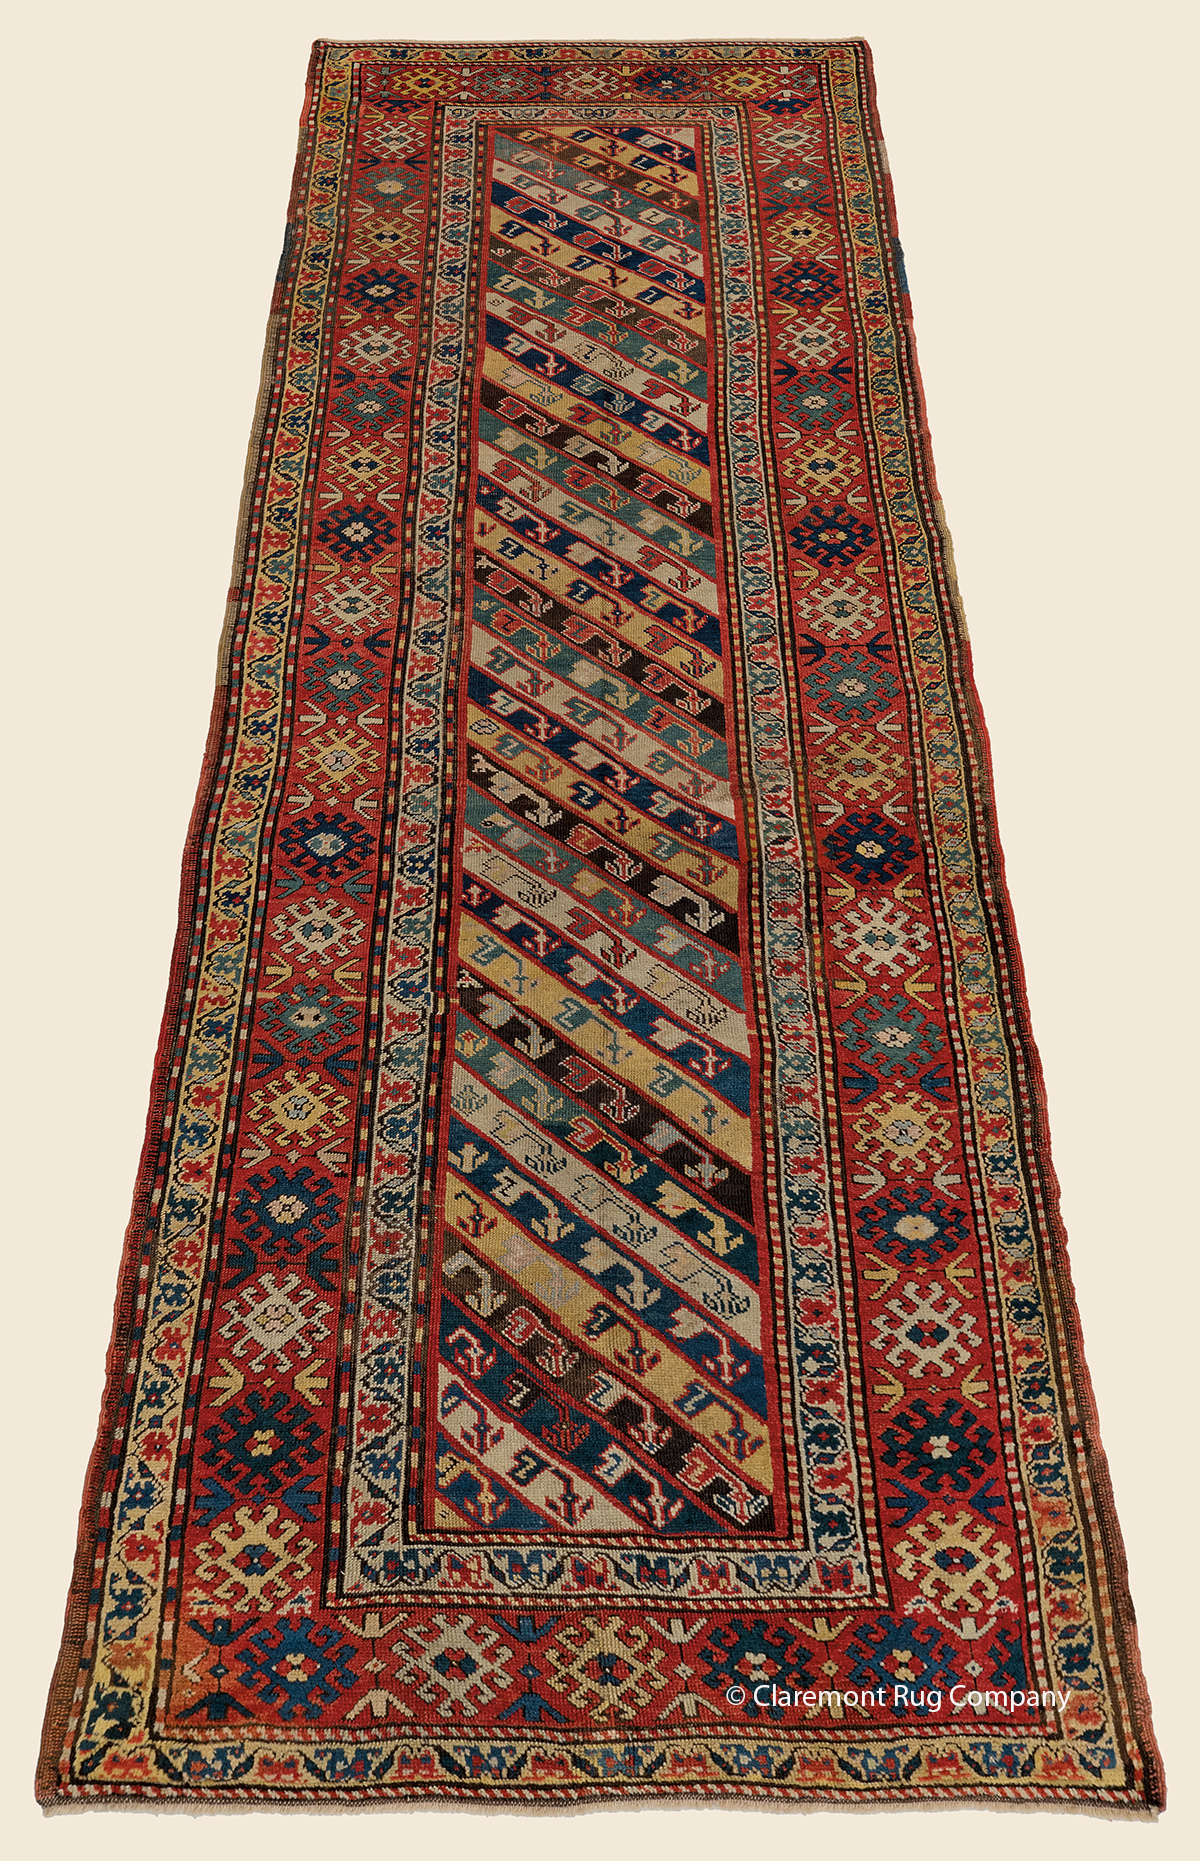 19th century Antique Caucasian Gendje Runner with diagonal stripes and latchhook border